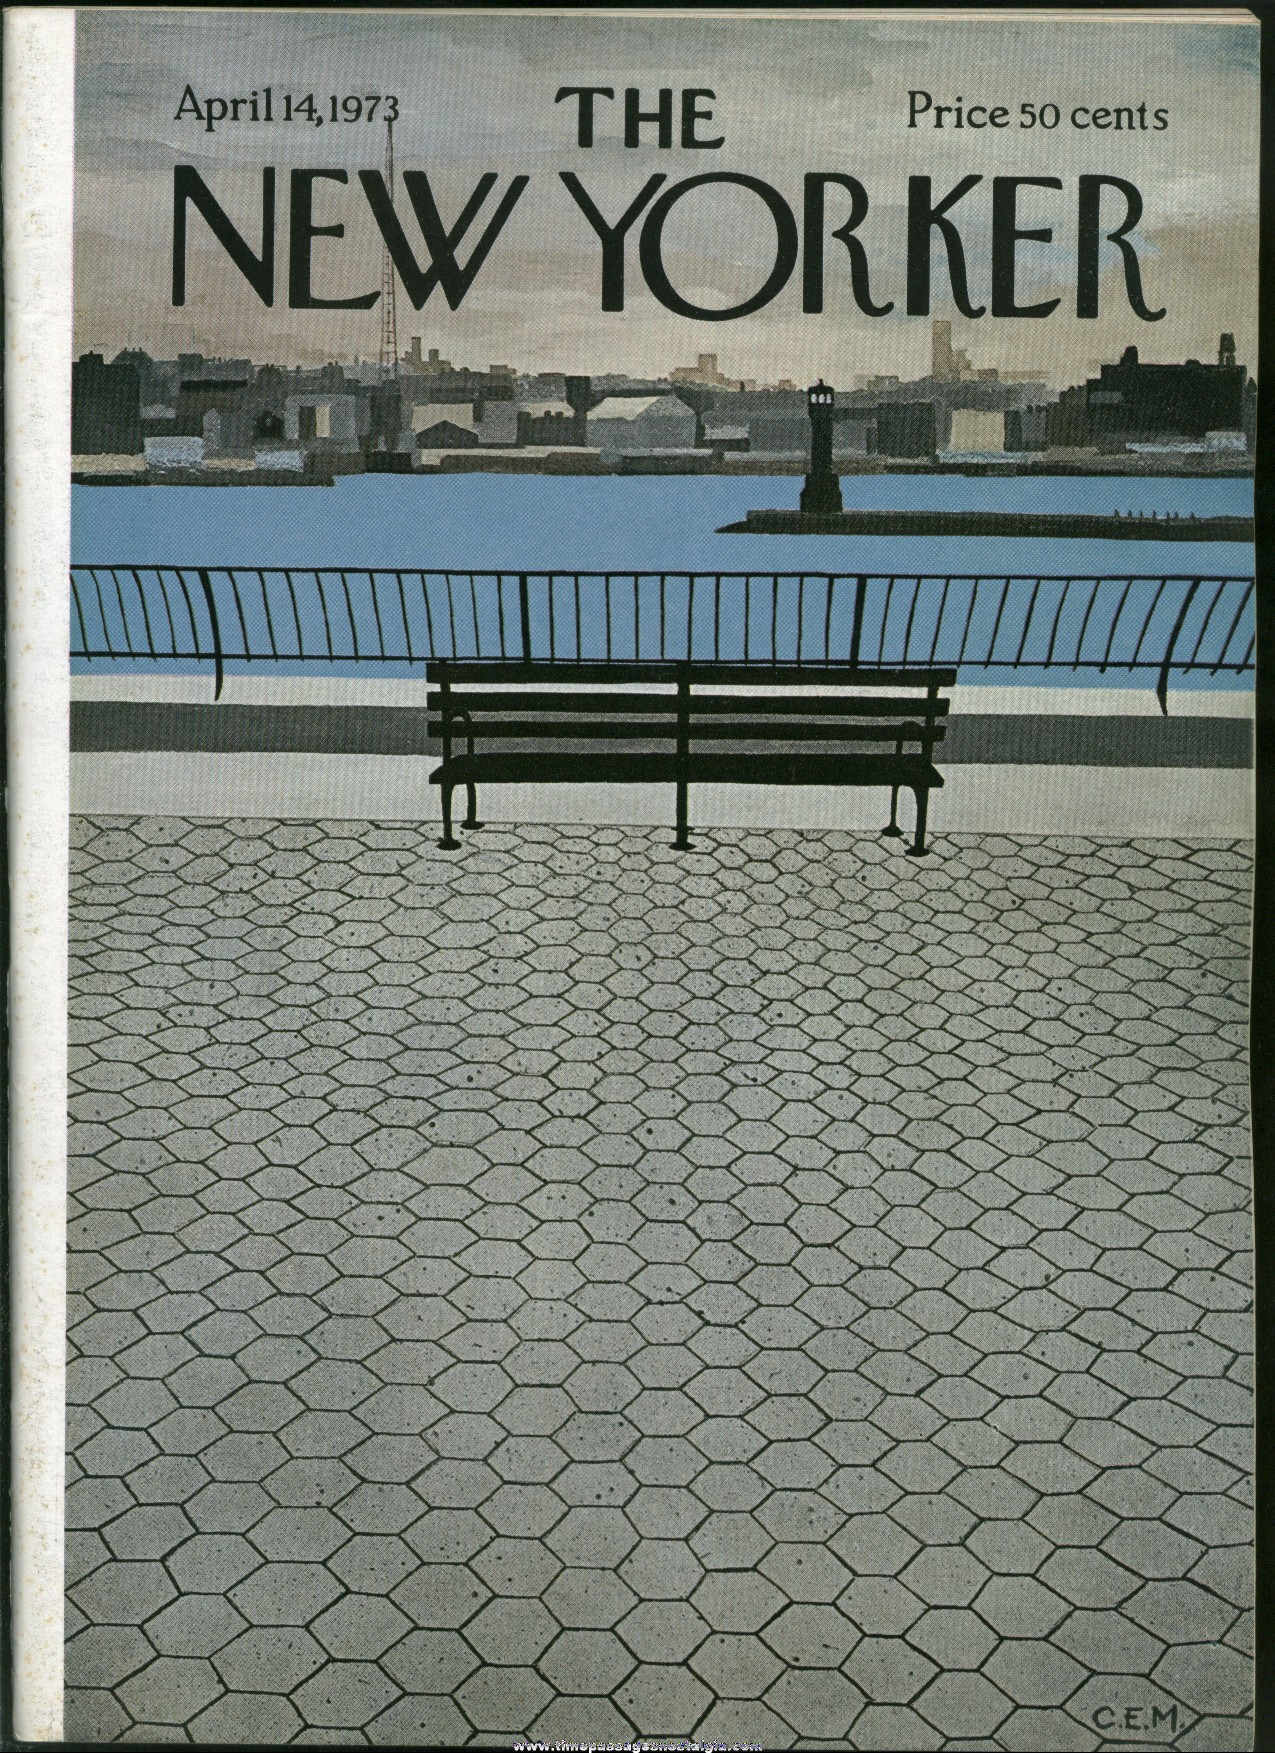 New Yorker Magazine - April 14, 1973 - Cover by Charles E. Martin